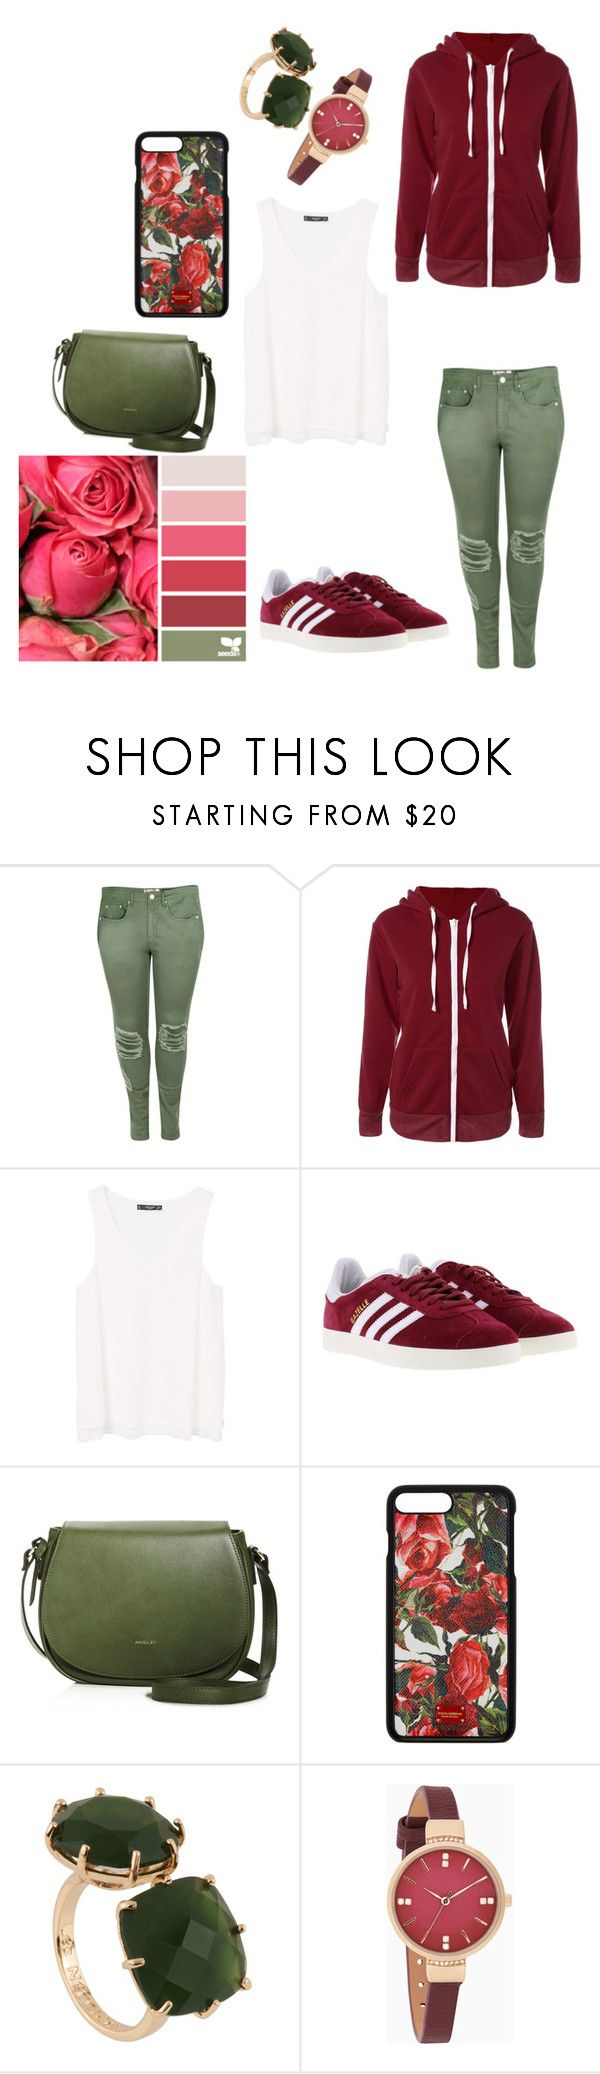 """rose"" by kiwi21drexel ❤ liked on Polyvore featuring Boohoo, MANGO, adidas, Angela Roi, Dolce&Gabbana and Les Néréides"